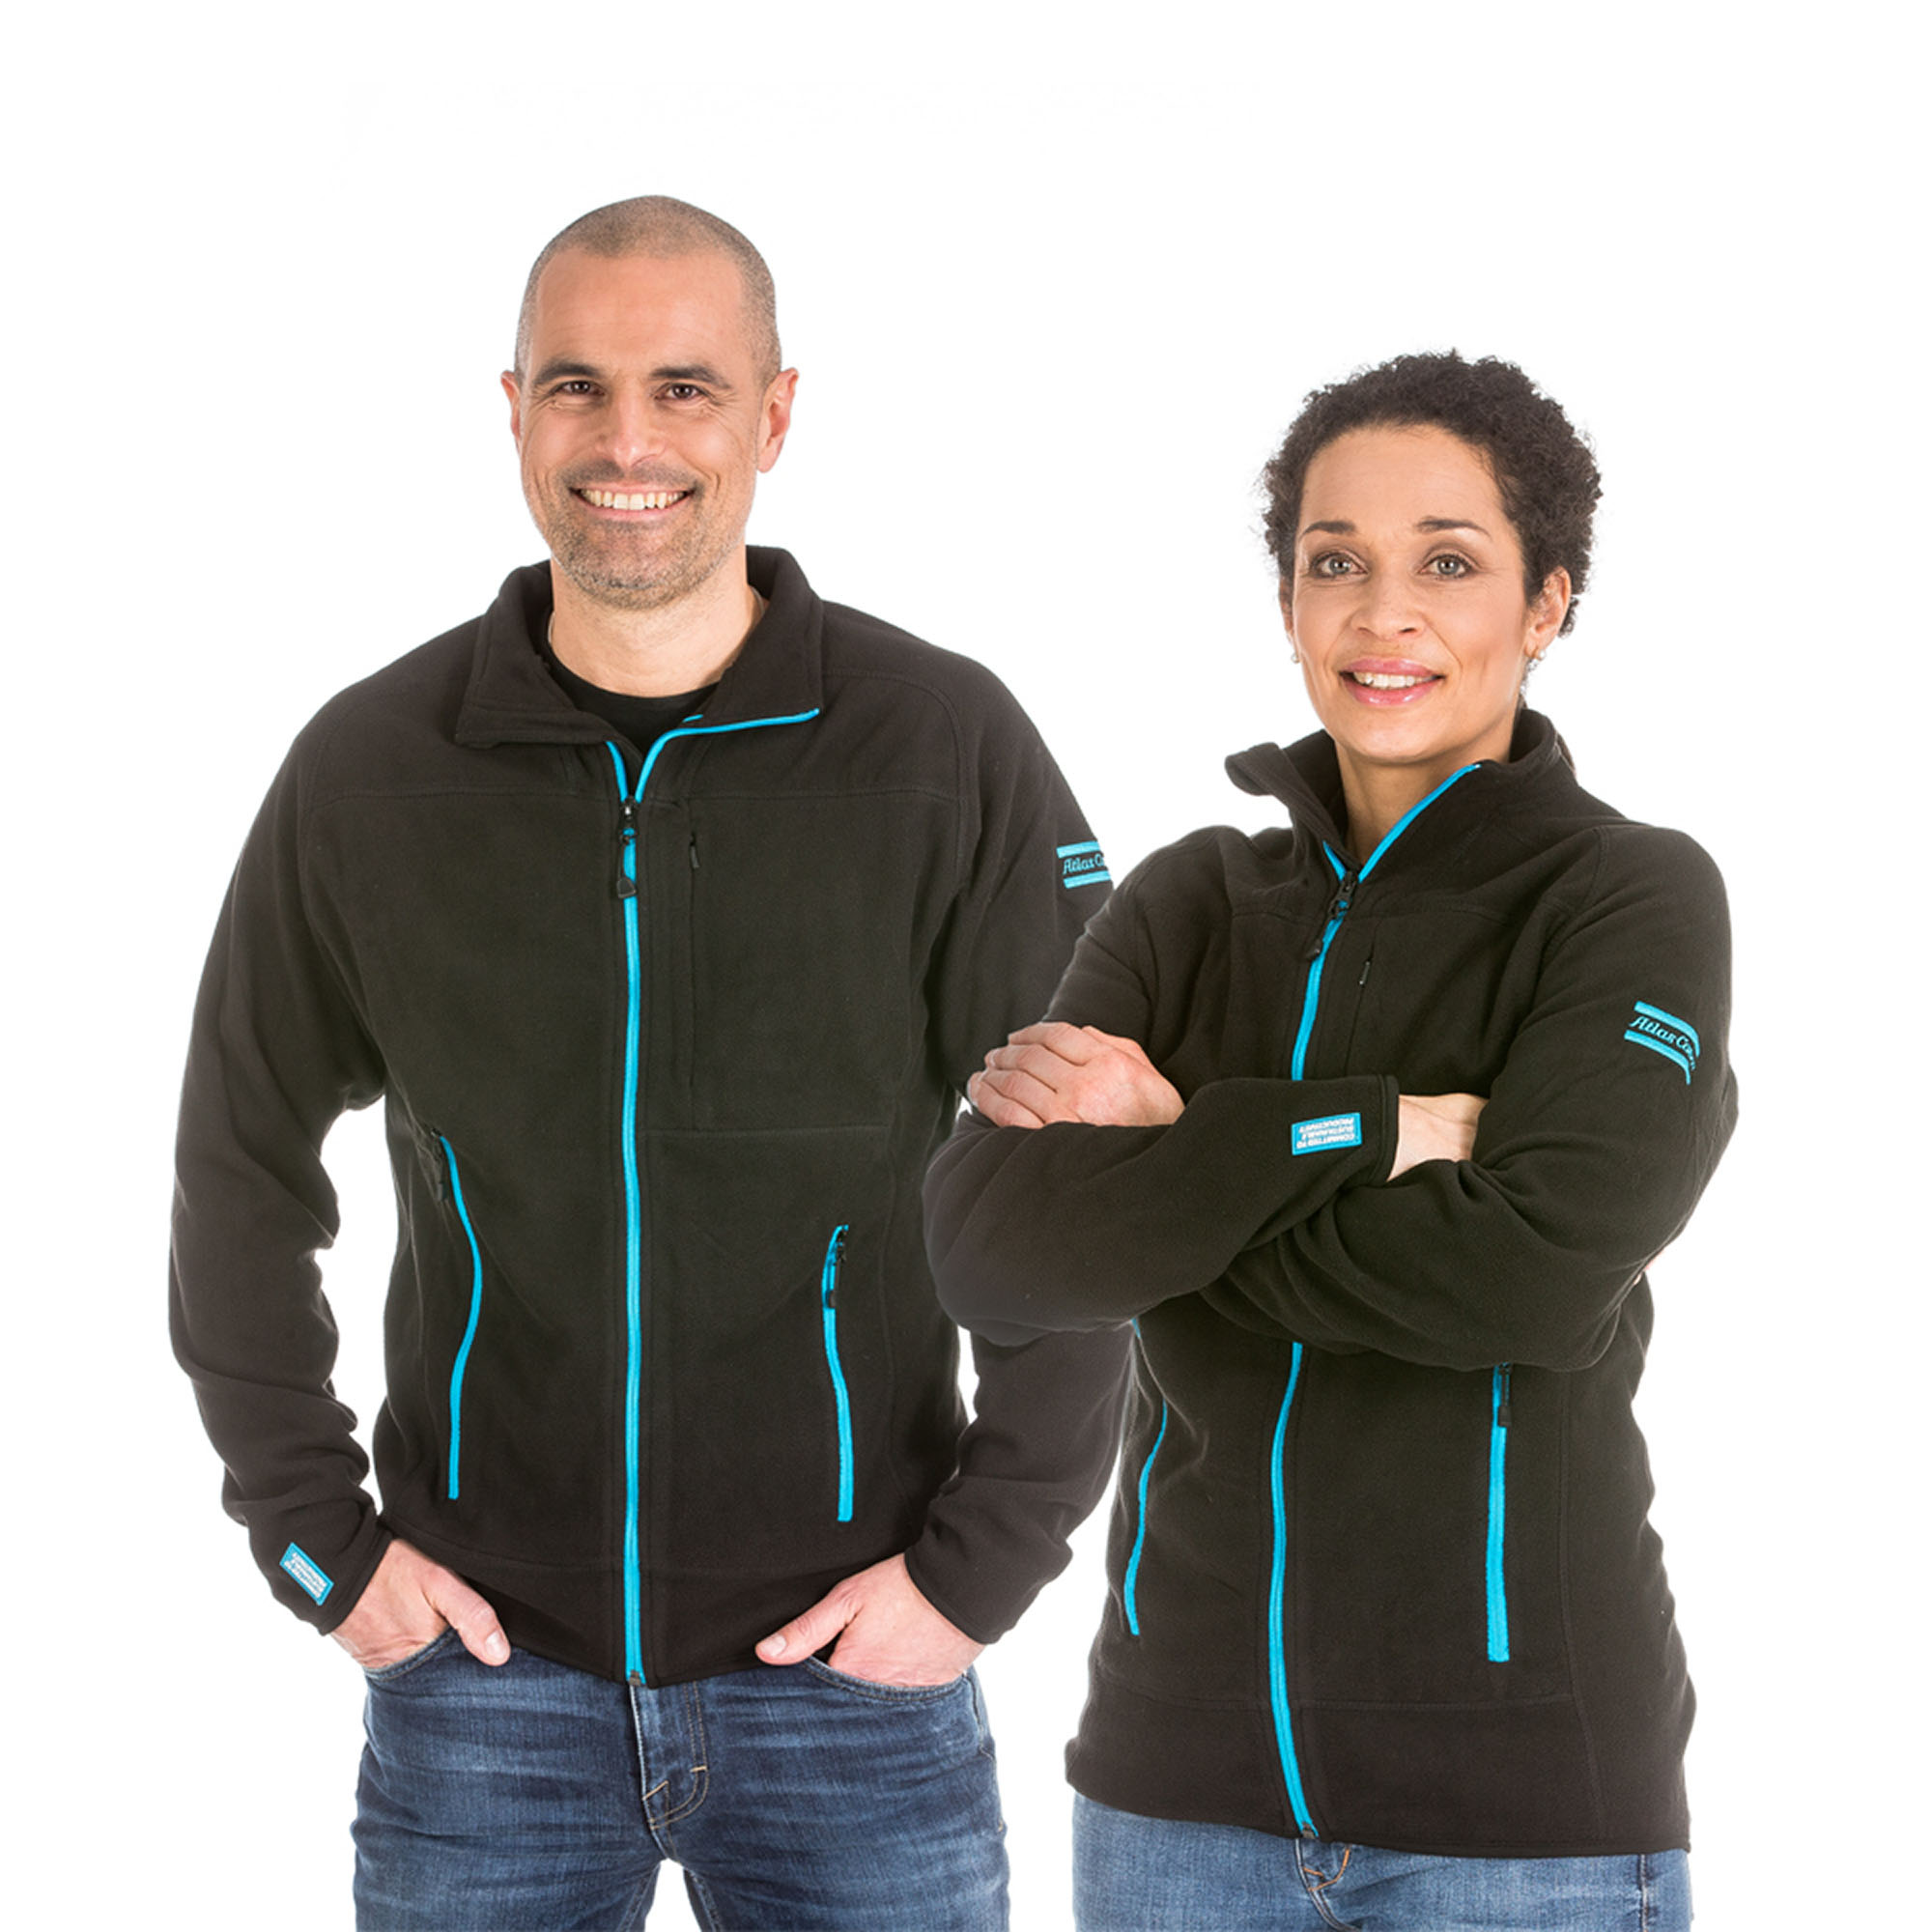 A light and warm fleece jacket with YKK zippers and polyester fabric made of 100% recycled PET bottles.